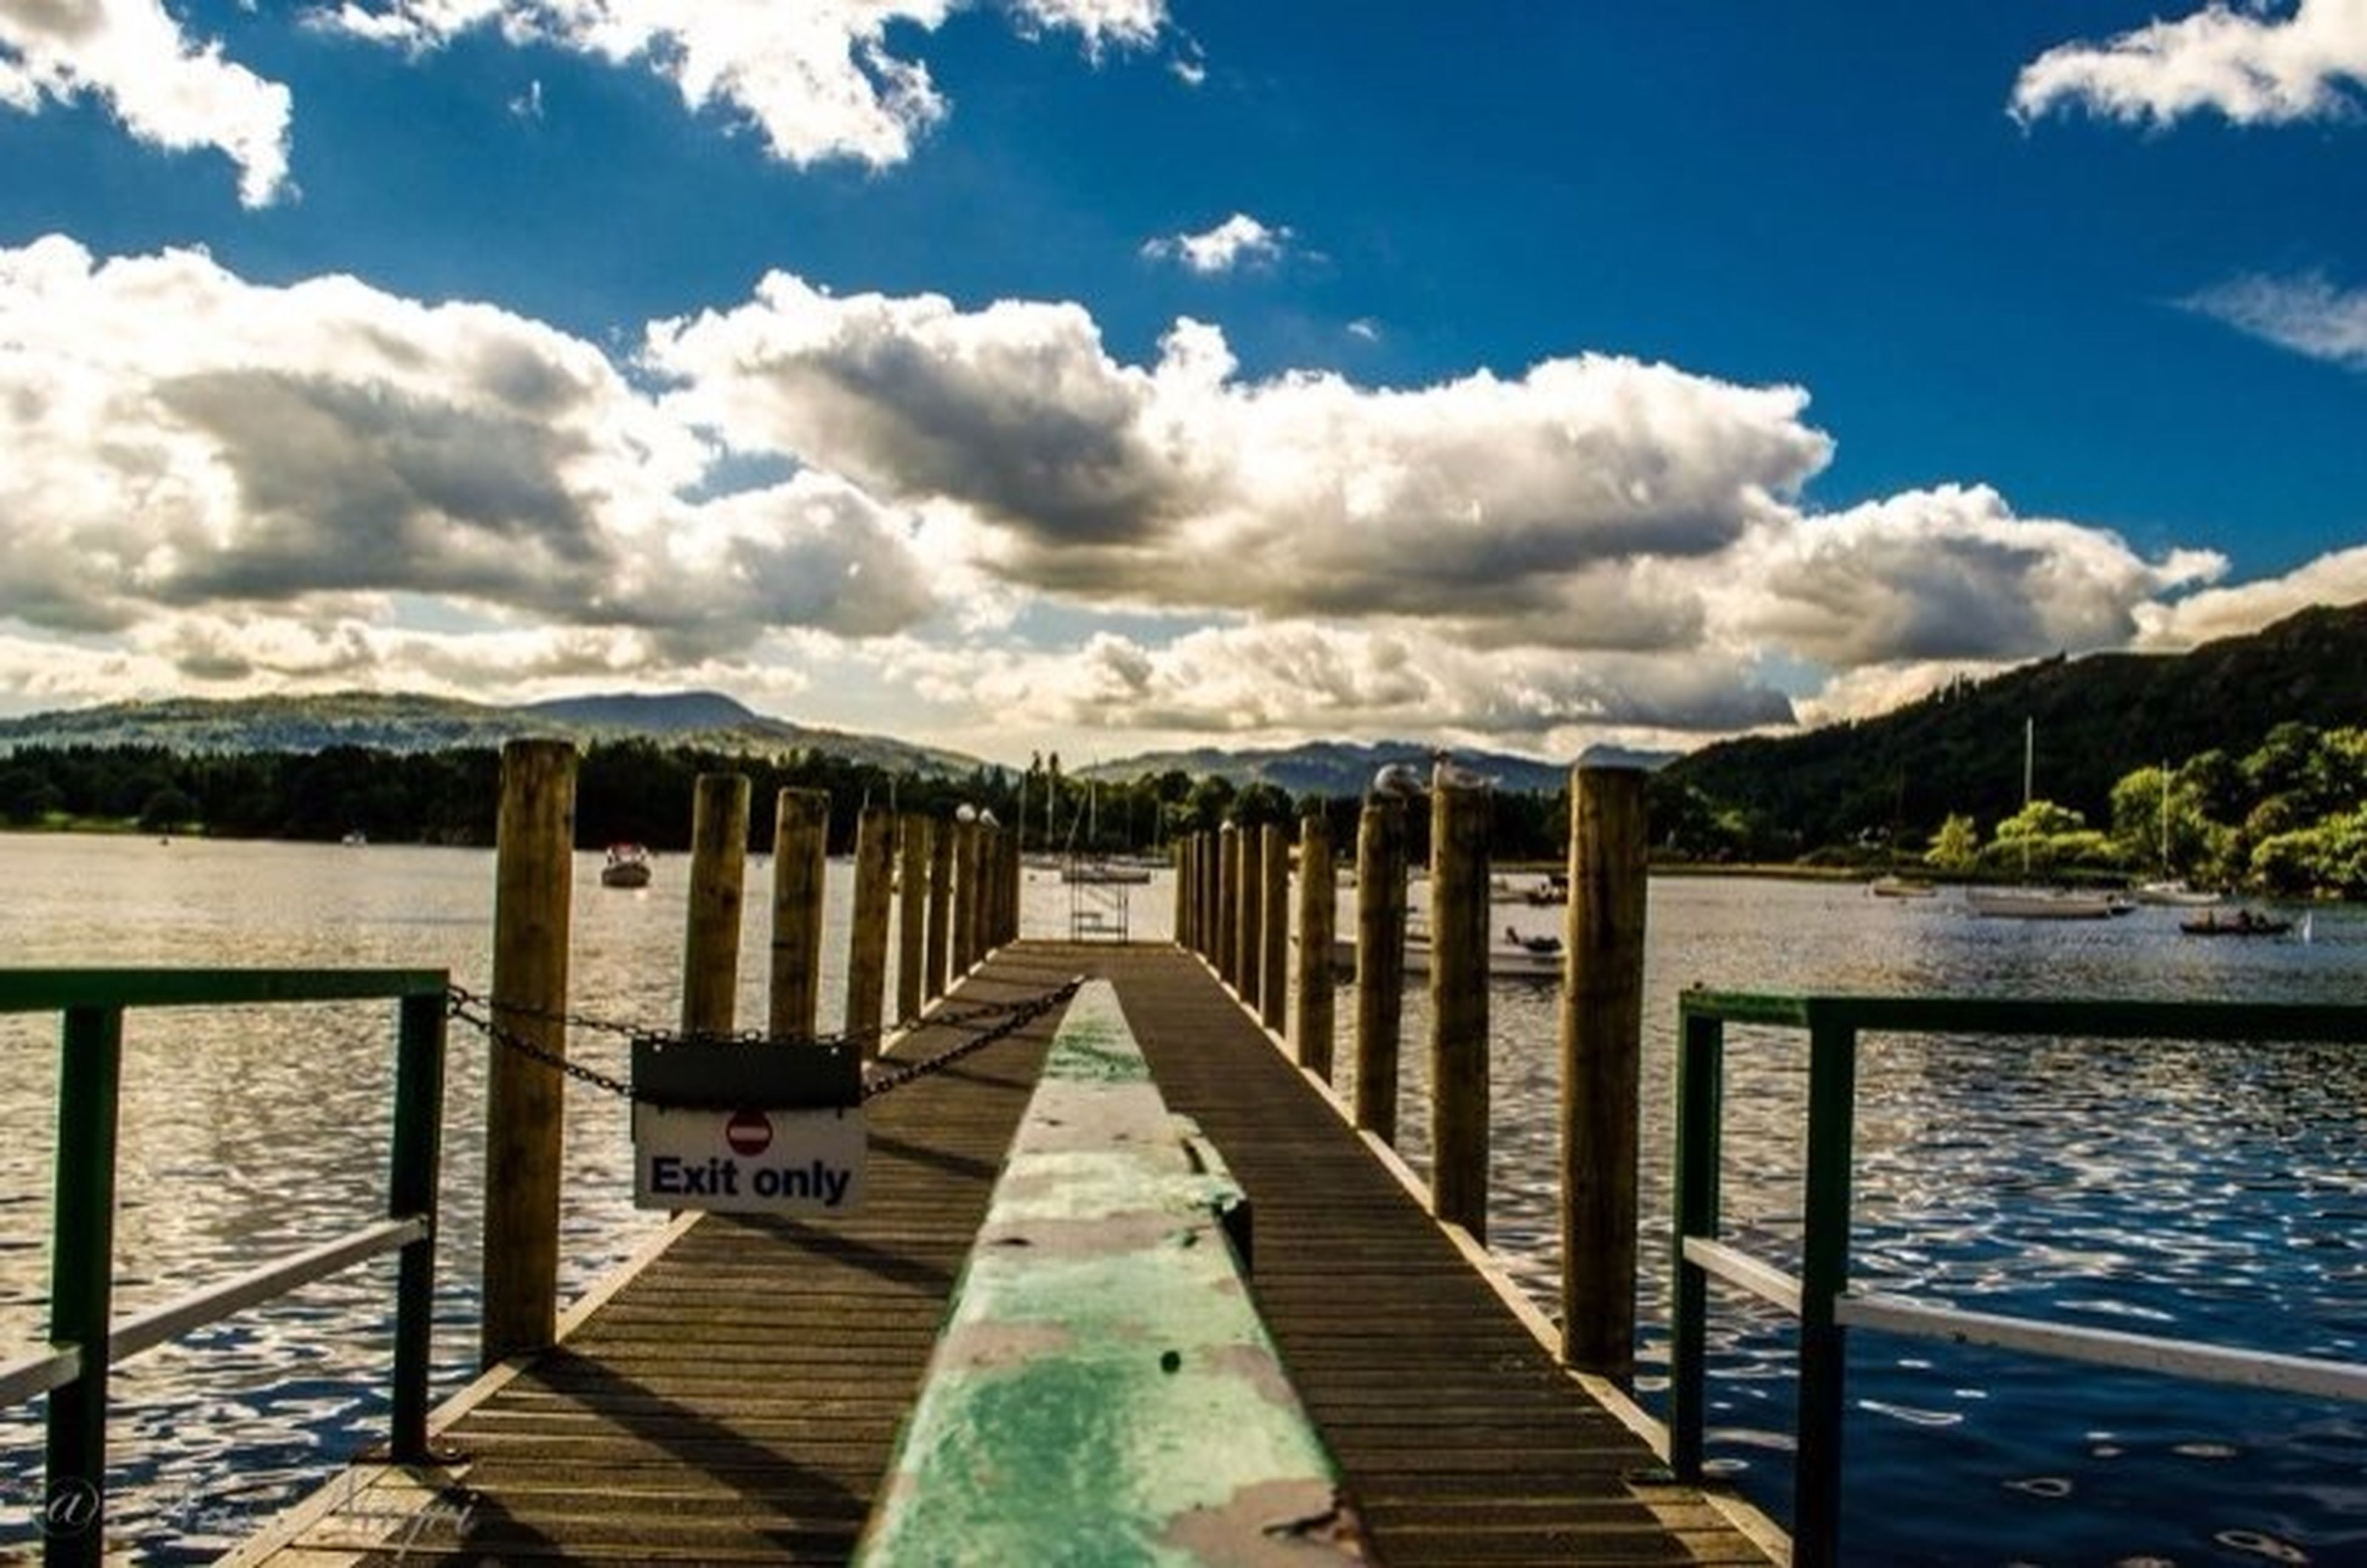 water, sky, pier, the way forward, jetty, lake, tranquil scene, railing, mountain, tranquility, cloud - sky, wood - material, scenics, cloud, nature, beauty in nature, blue, boardwalk, wood, sea